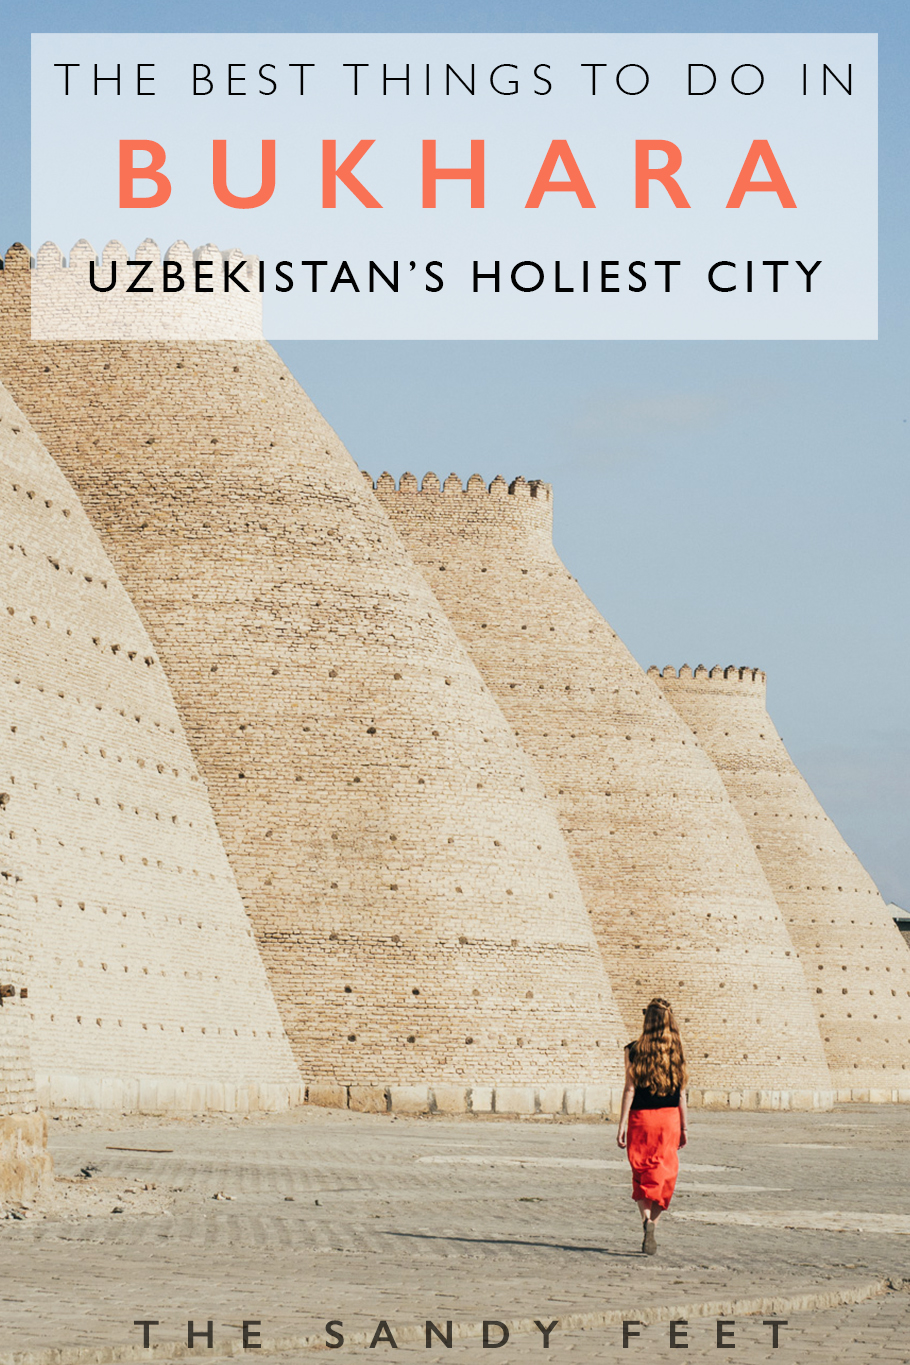 A Short Guide To Bukhara, Uzbekistan's Holiest City | The Best Things To Do In Bukhara, an essential stop for travellers on Asia's silk road.